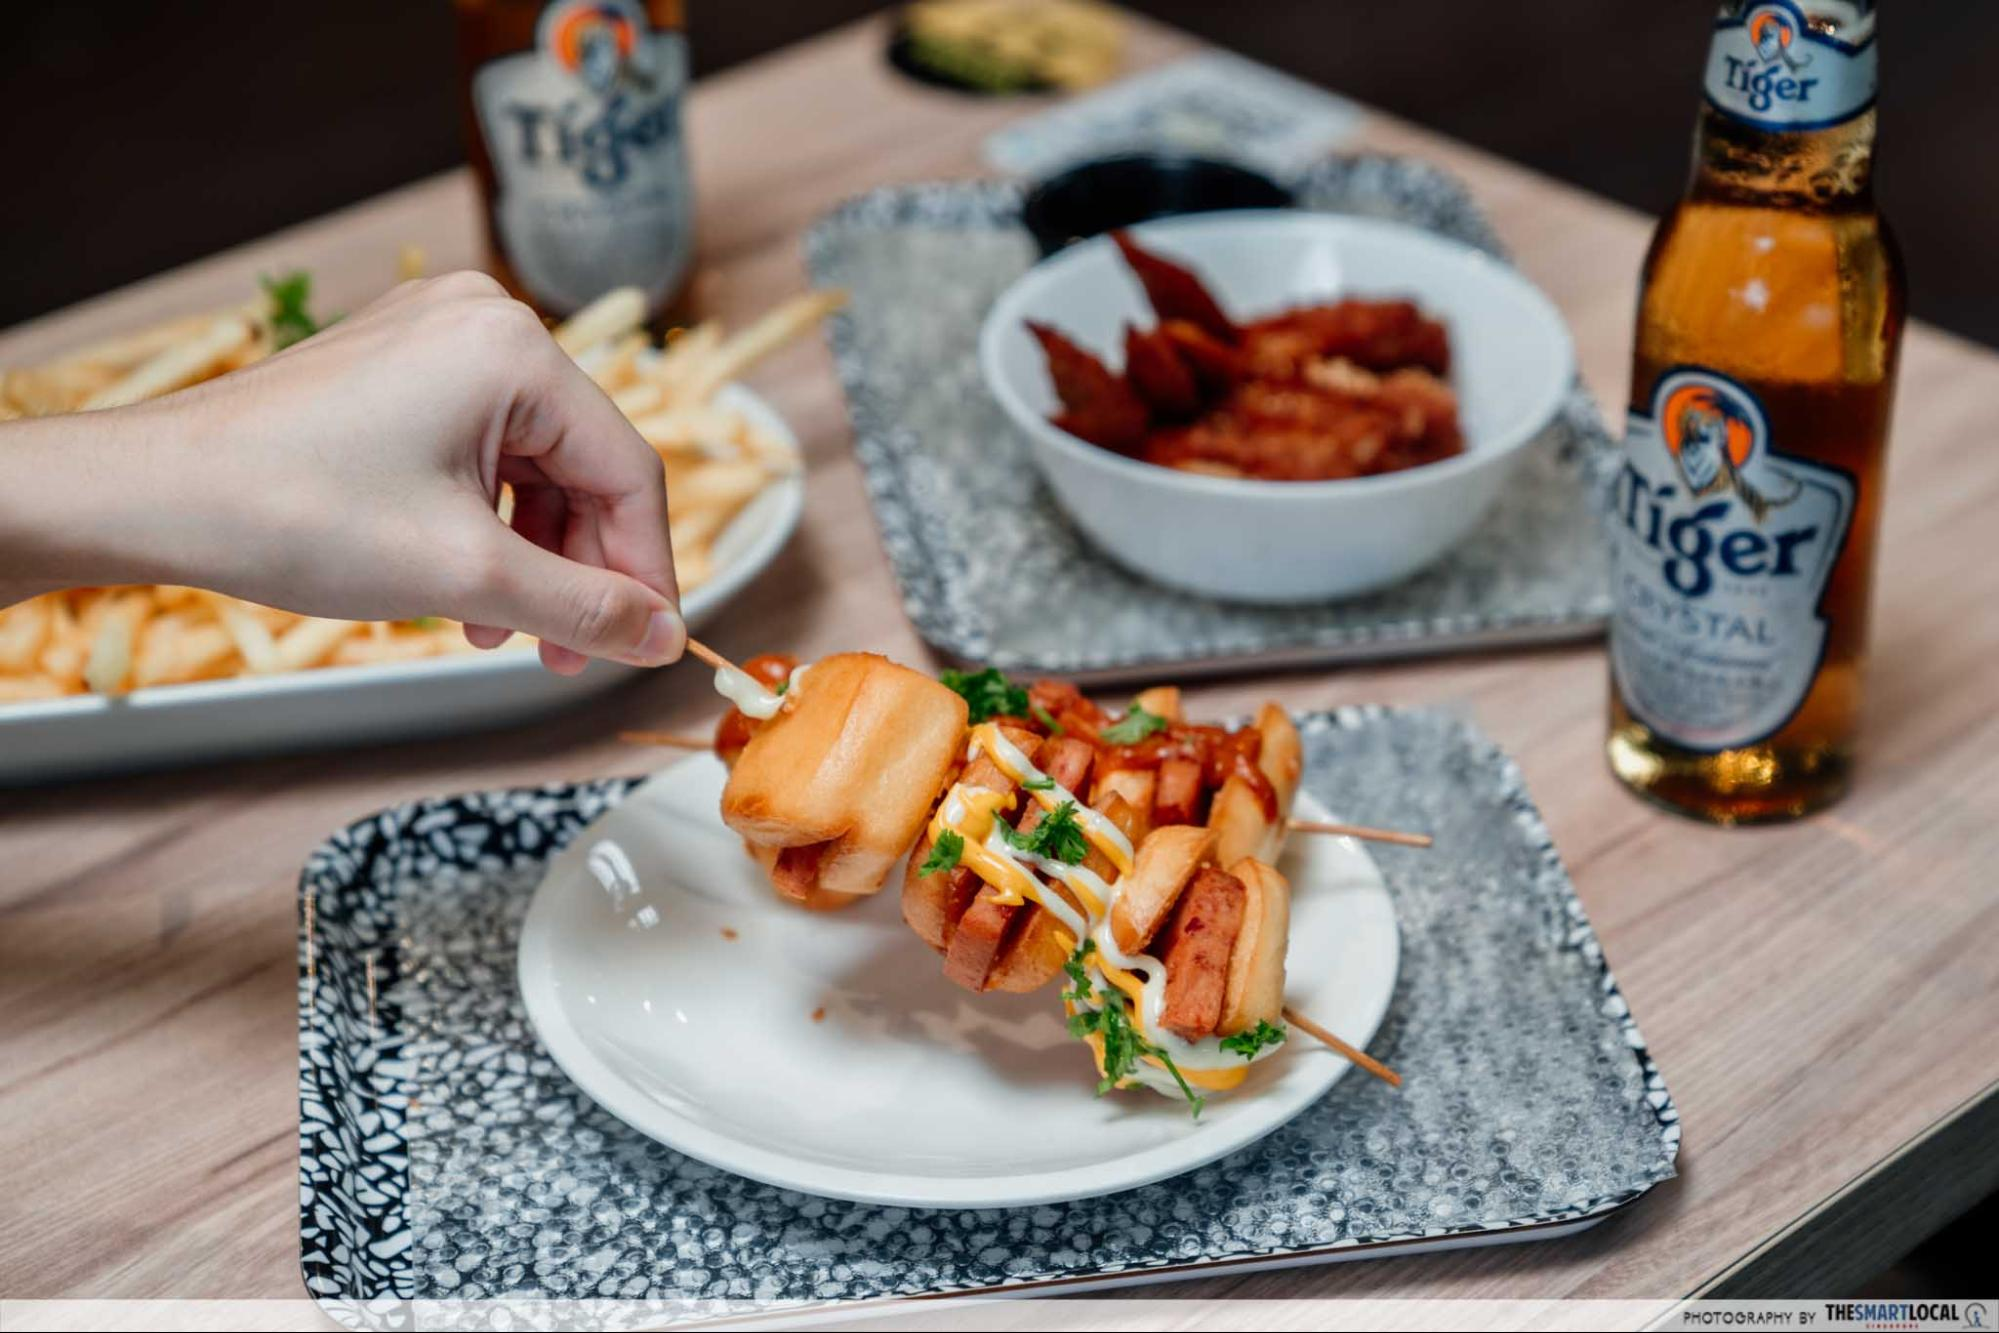 Mantou sticks with nachos and mayo and chilli crab sauce